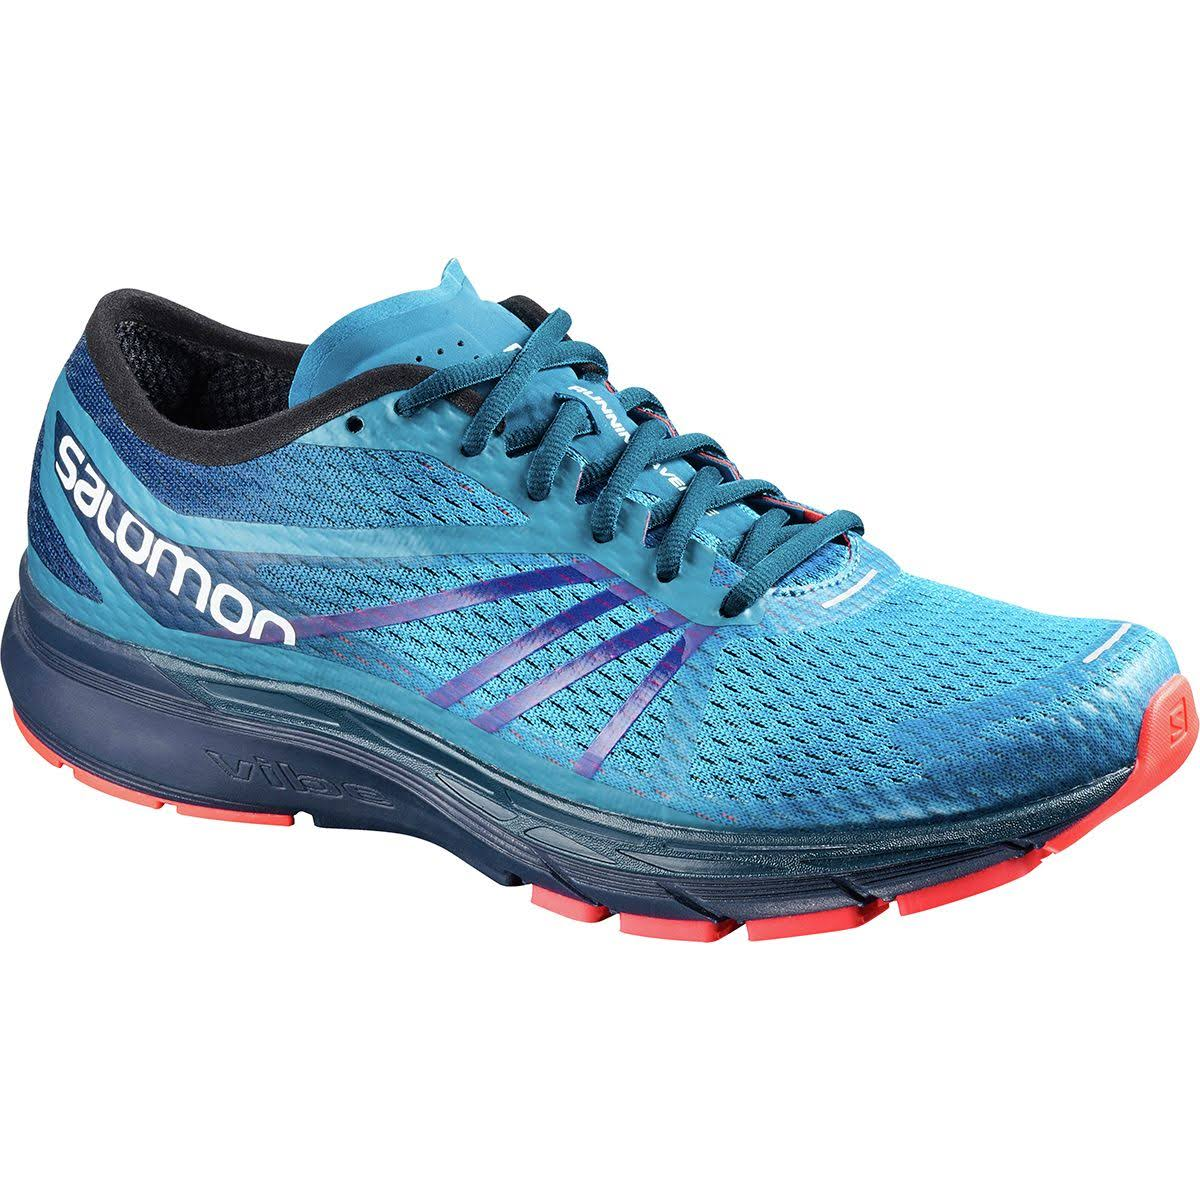 Surf Men 11 bk Salomon Sonic Shoe Ra D 0 Pro RqX1wva